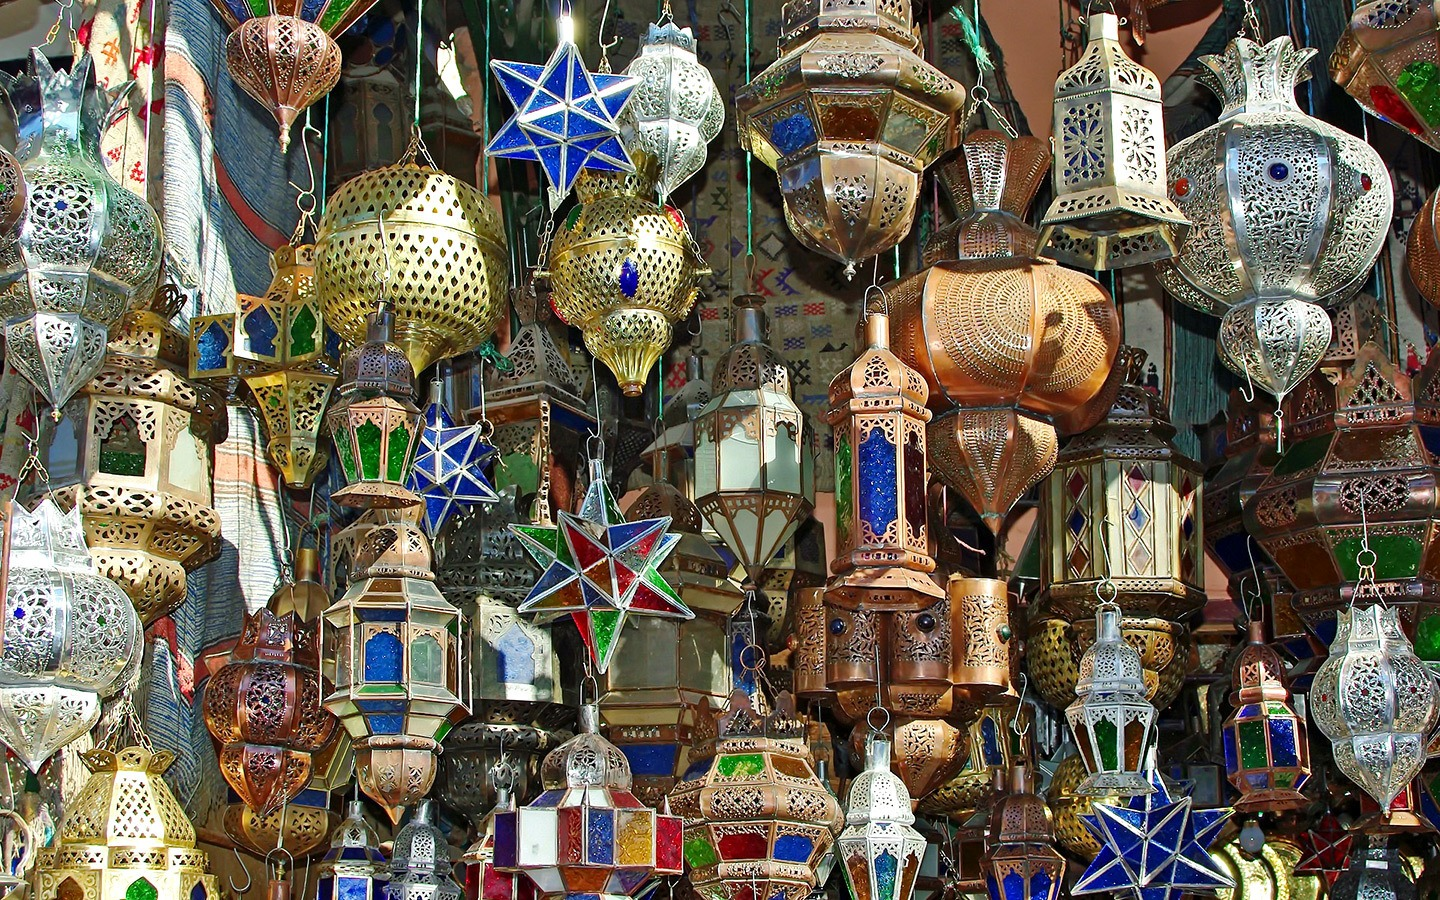 Lanterns in the souk, Marrakech